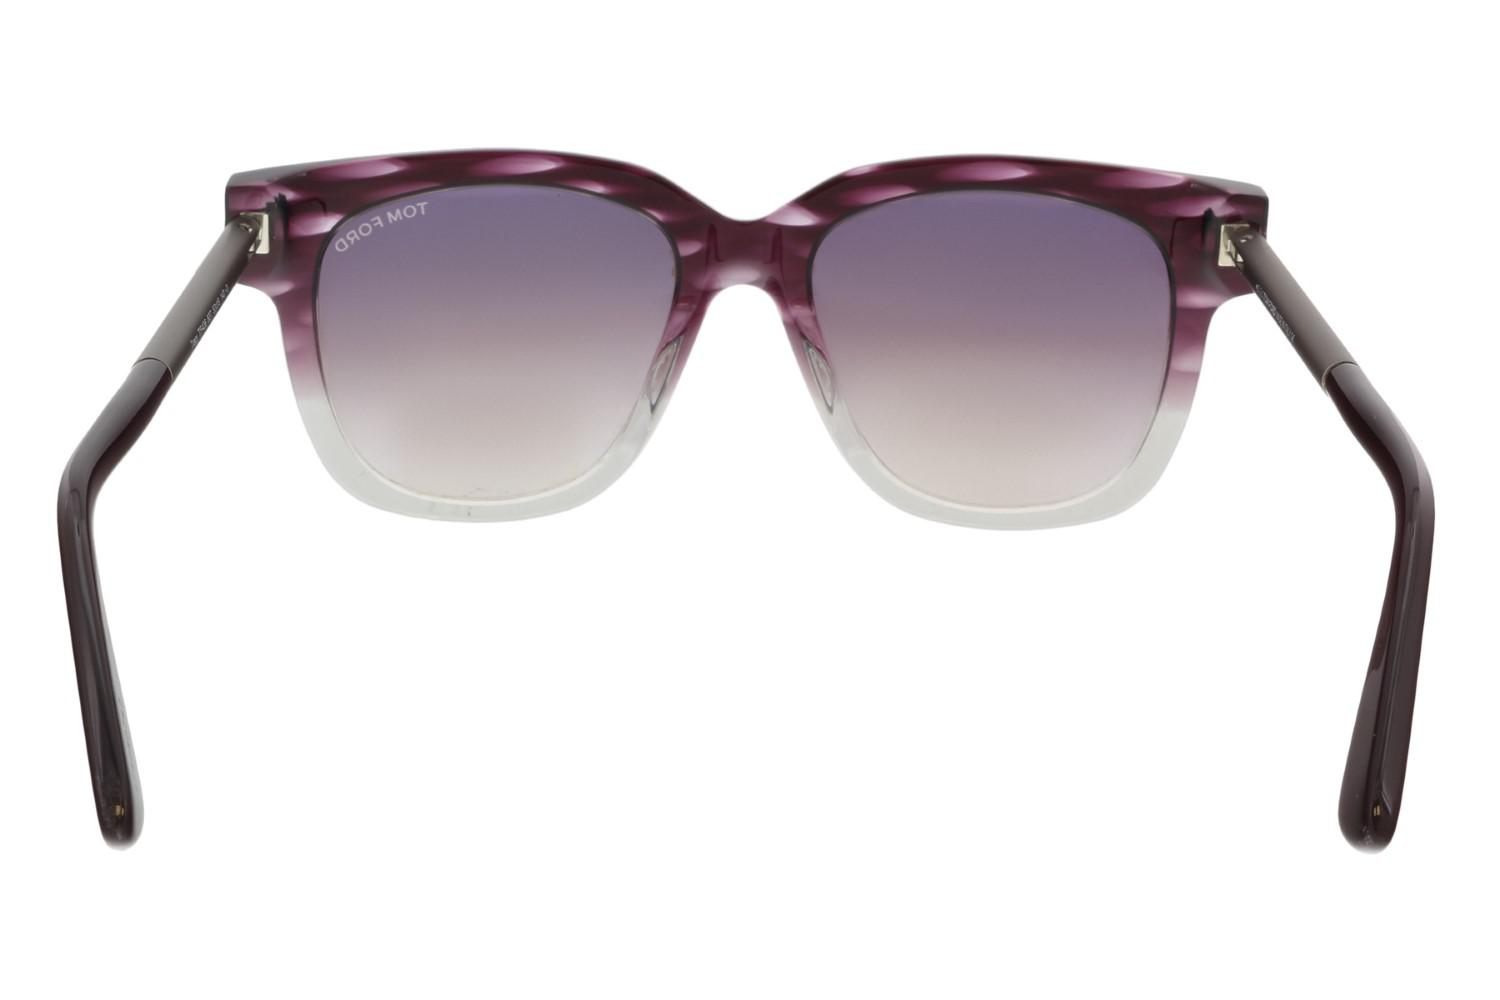 fa0cae970b9f Lyst - Tom Ford Sunglasses Tracy Tf 436 Ft 83t Violet other ...